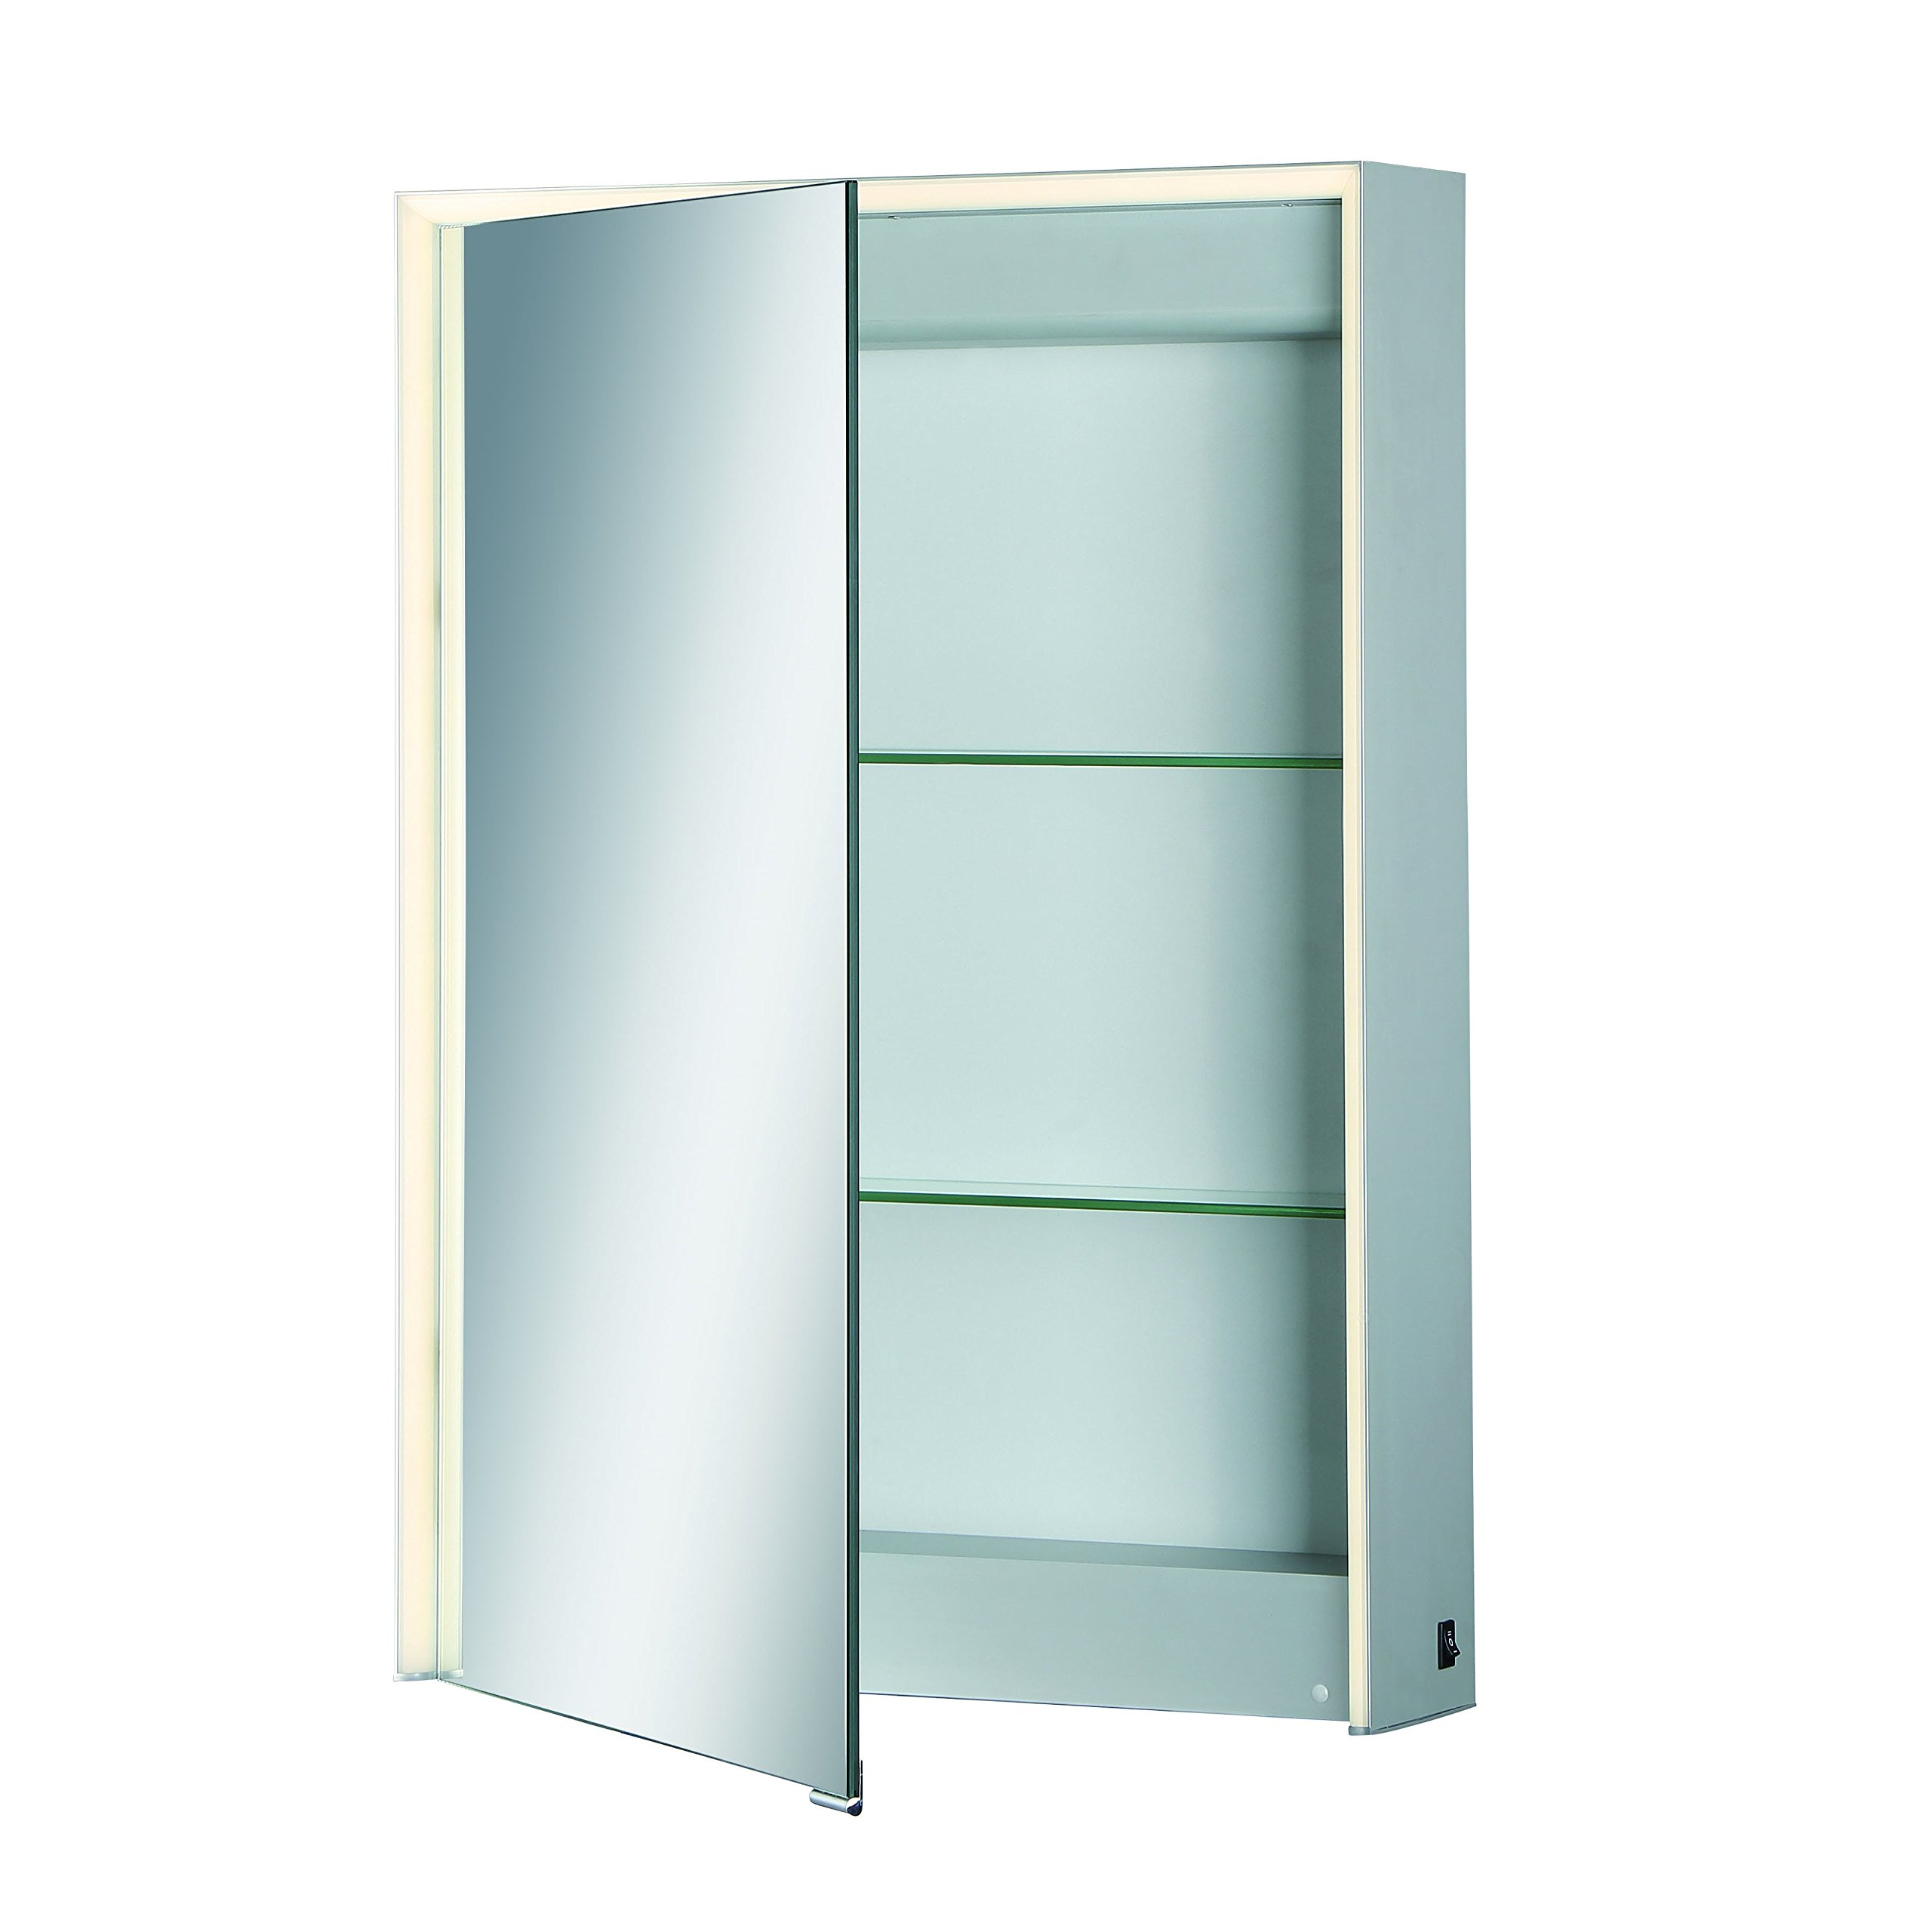 Eurofase 31484-015 Mirror Cabinet Edge-Lit LED Single Door, 28 Inches High by 20 Inches Wide-Model